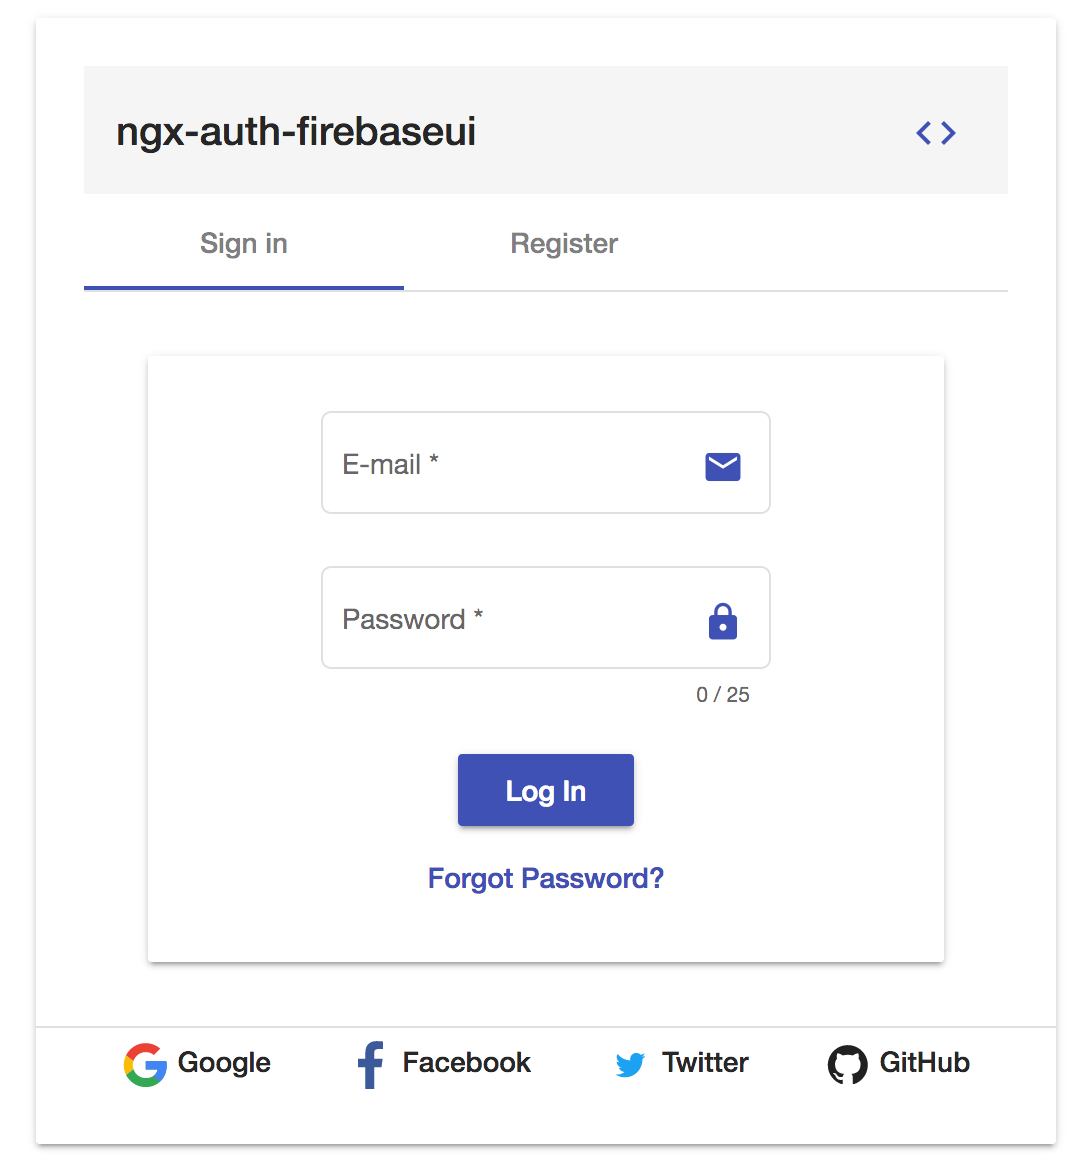 Angular Material User Interface for firebase authentication with ngx